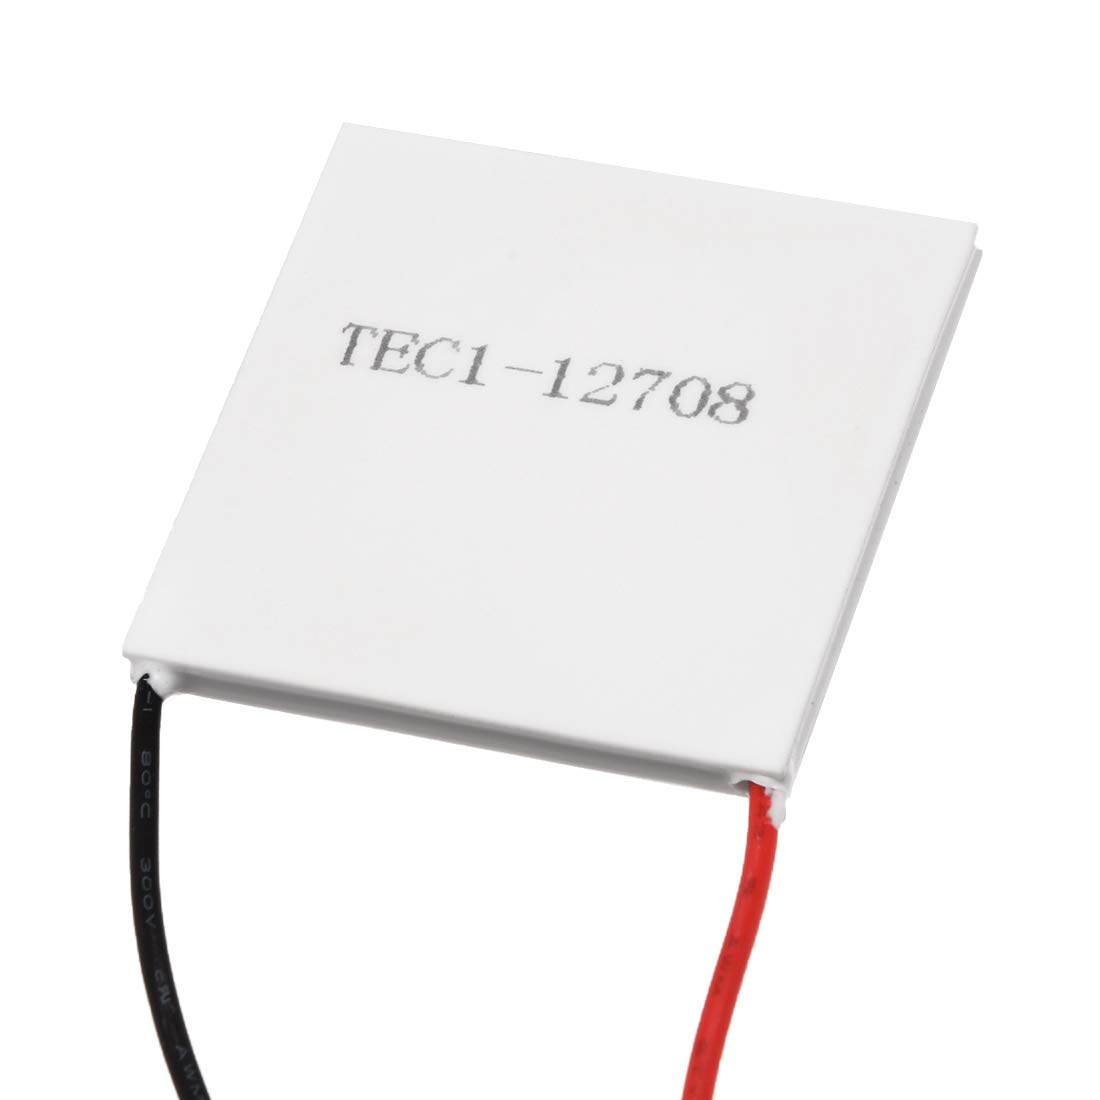 sourcingmap TEC1-12710 Thermoelectric Cooler Heat Sink Cooling Peltier 12 Volt 120 Watt